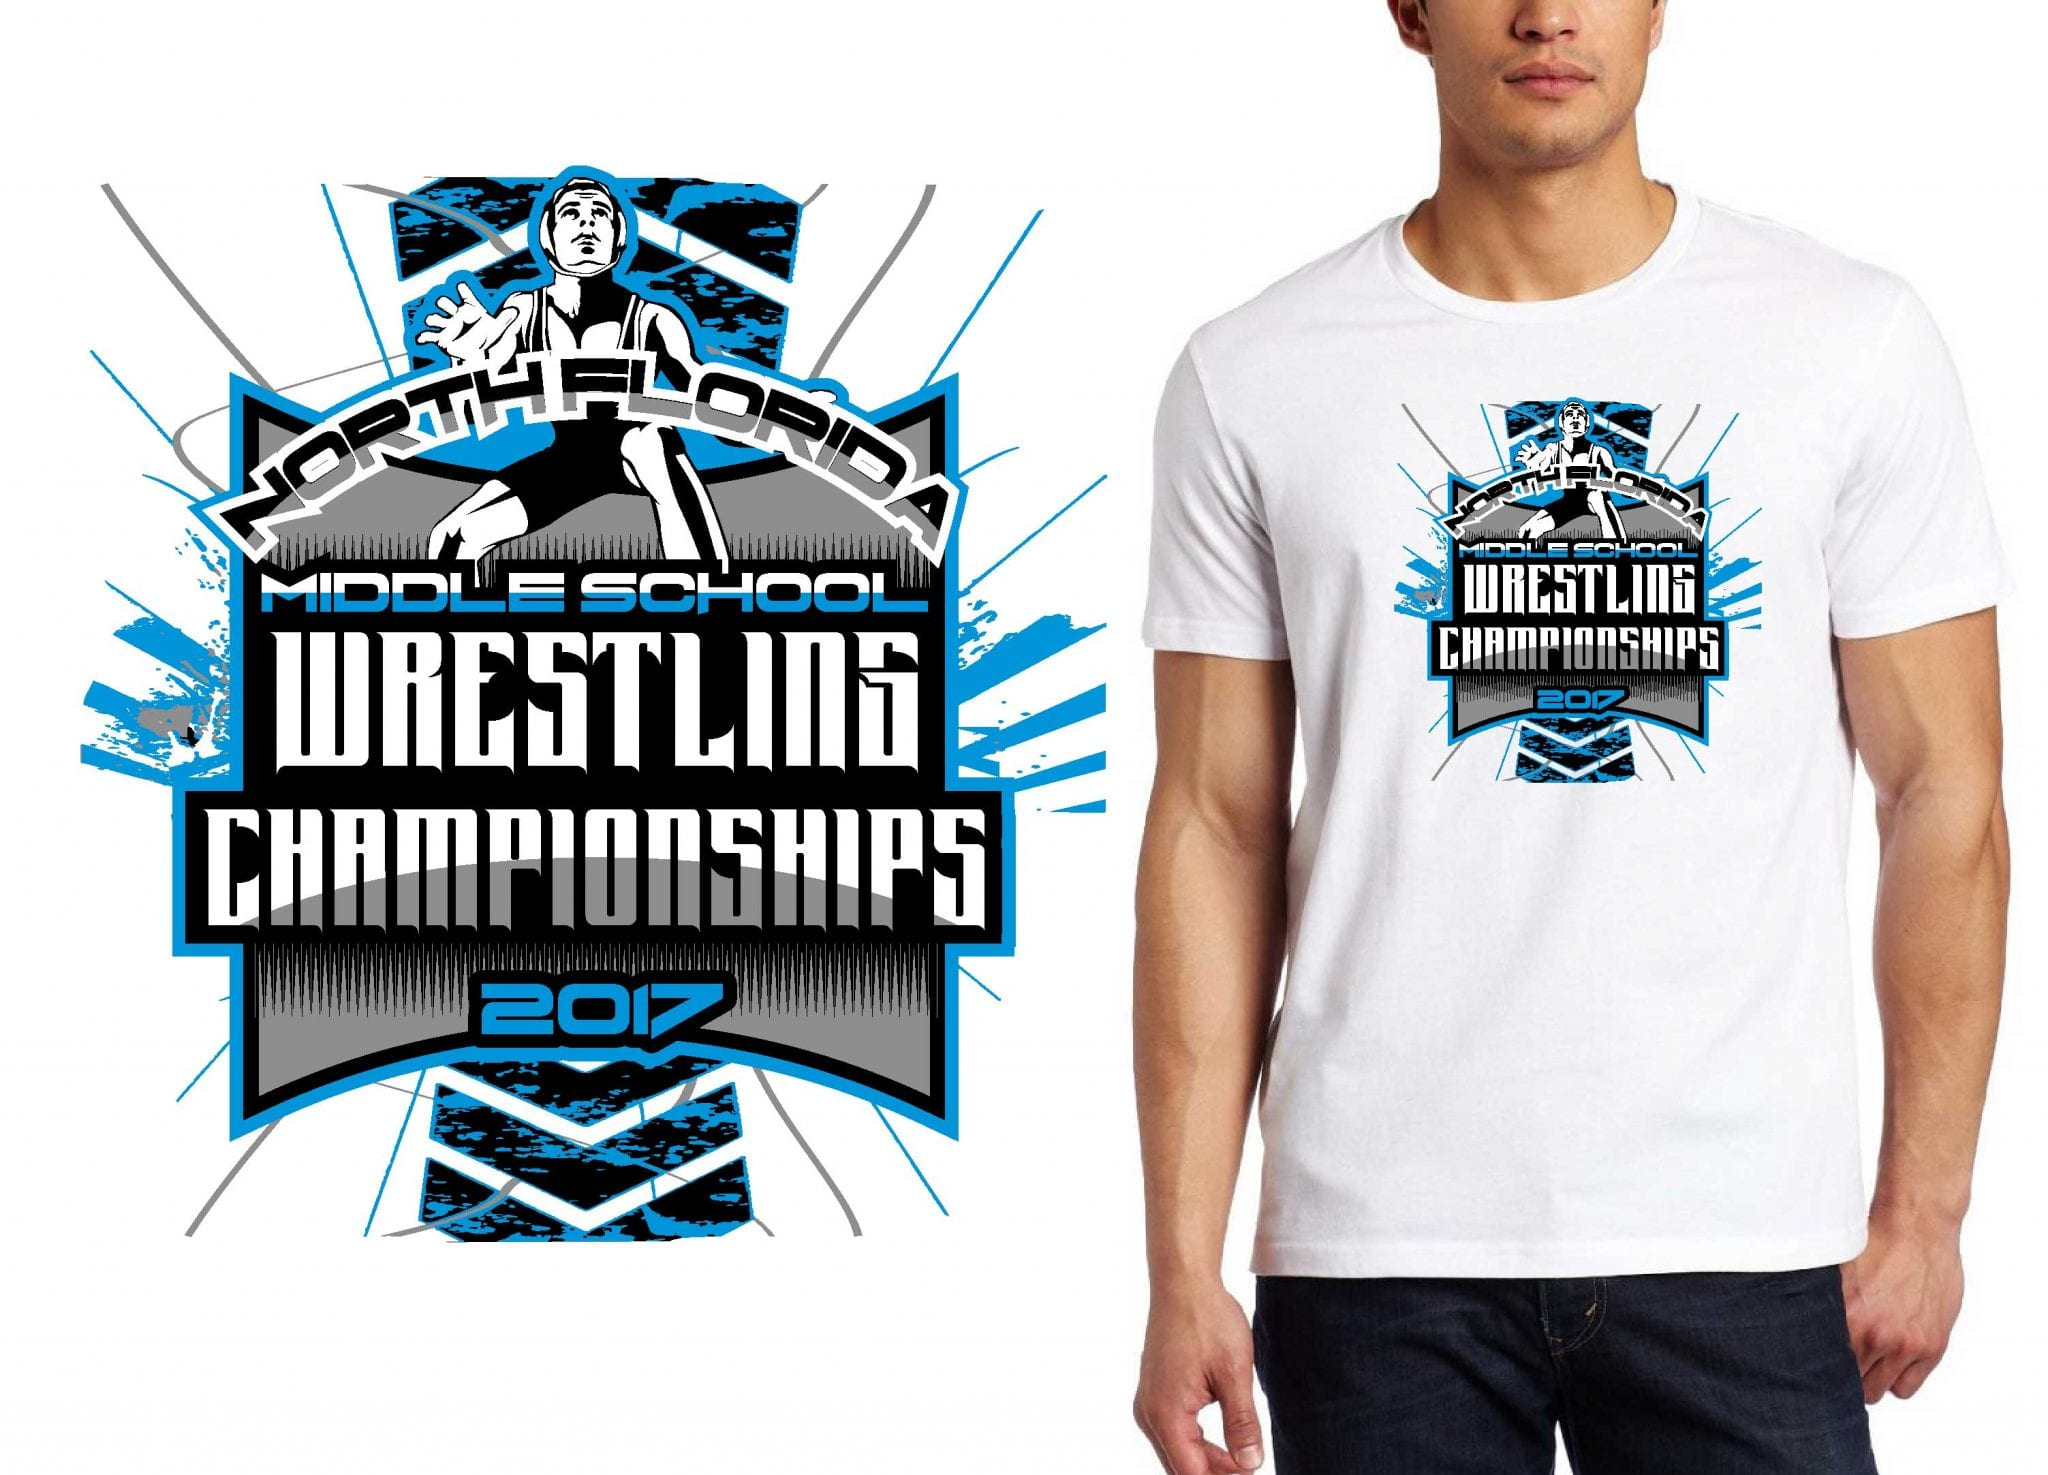 2017 North Florida MS Wrestling Championships vector logo design for wrestling t-shirt UrArtStudio